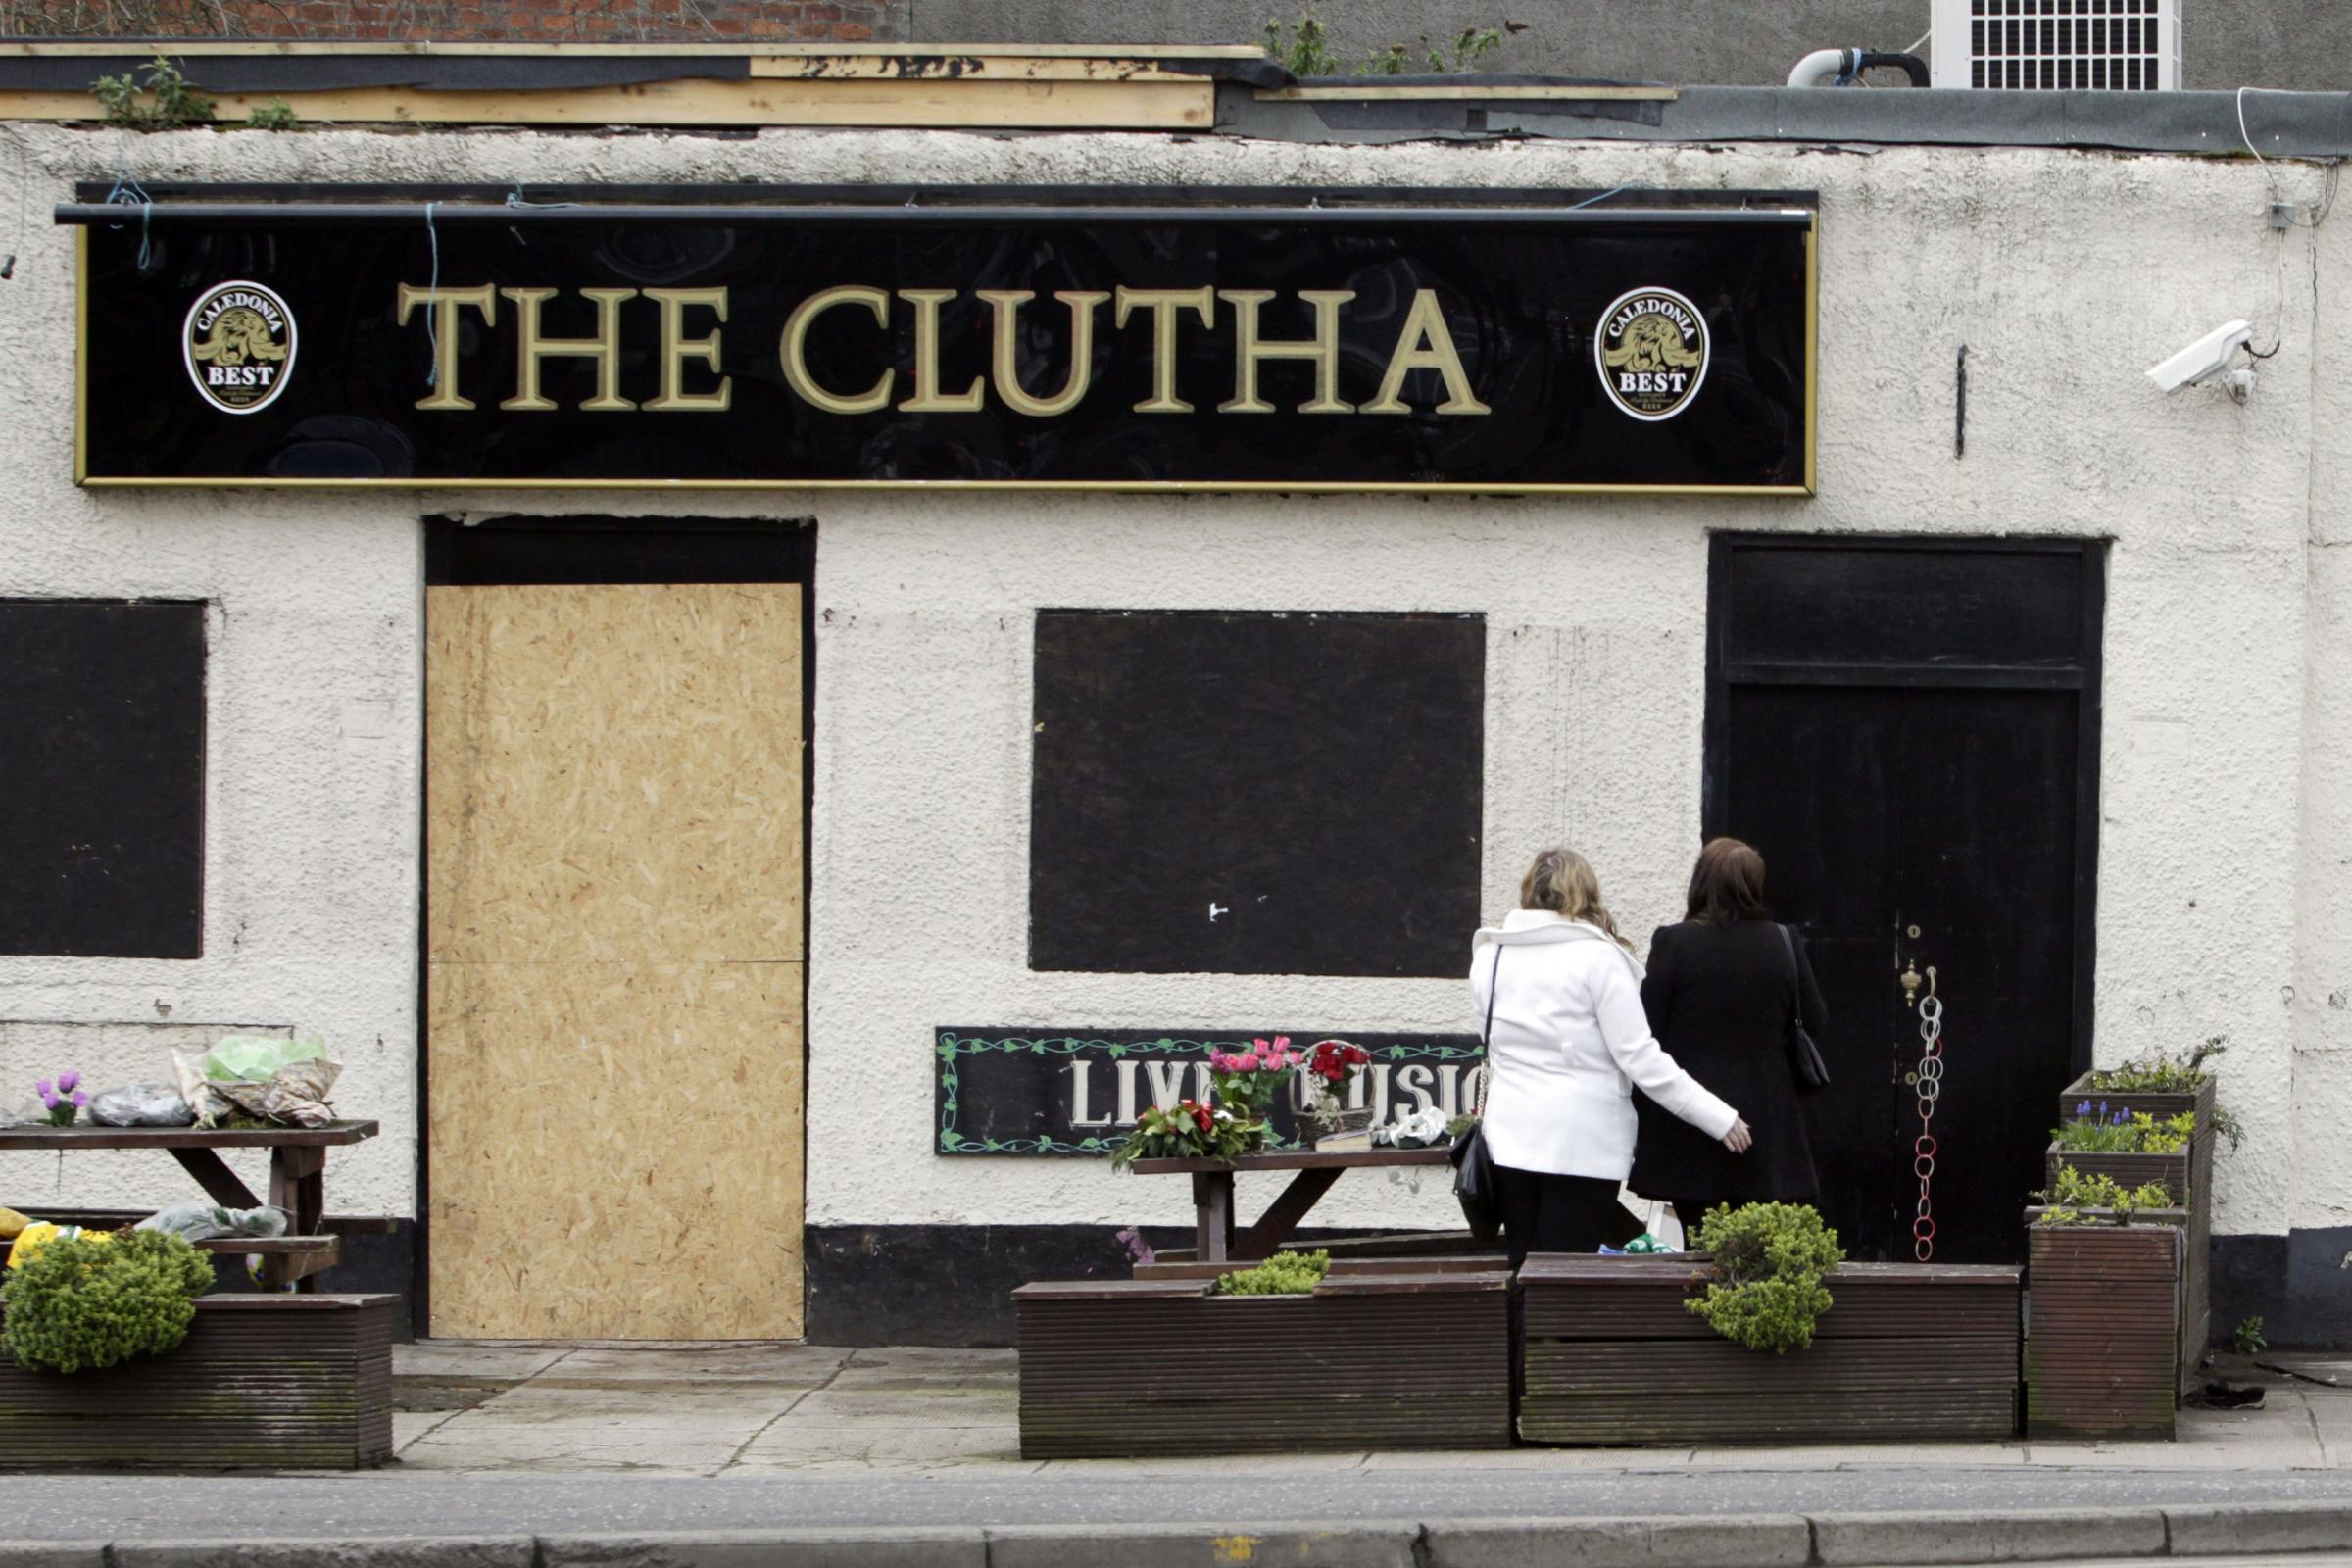 Service remembers Clutha victims